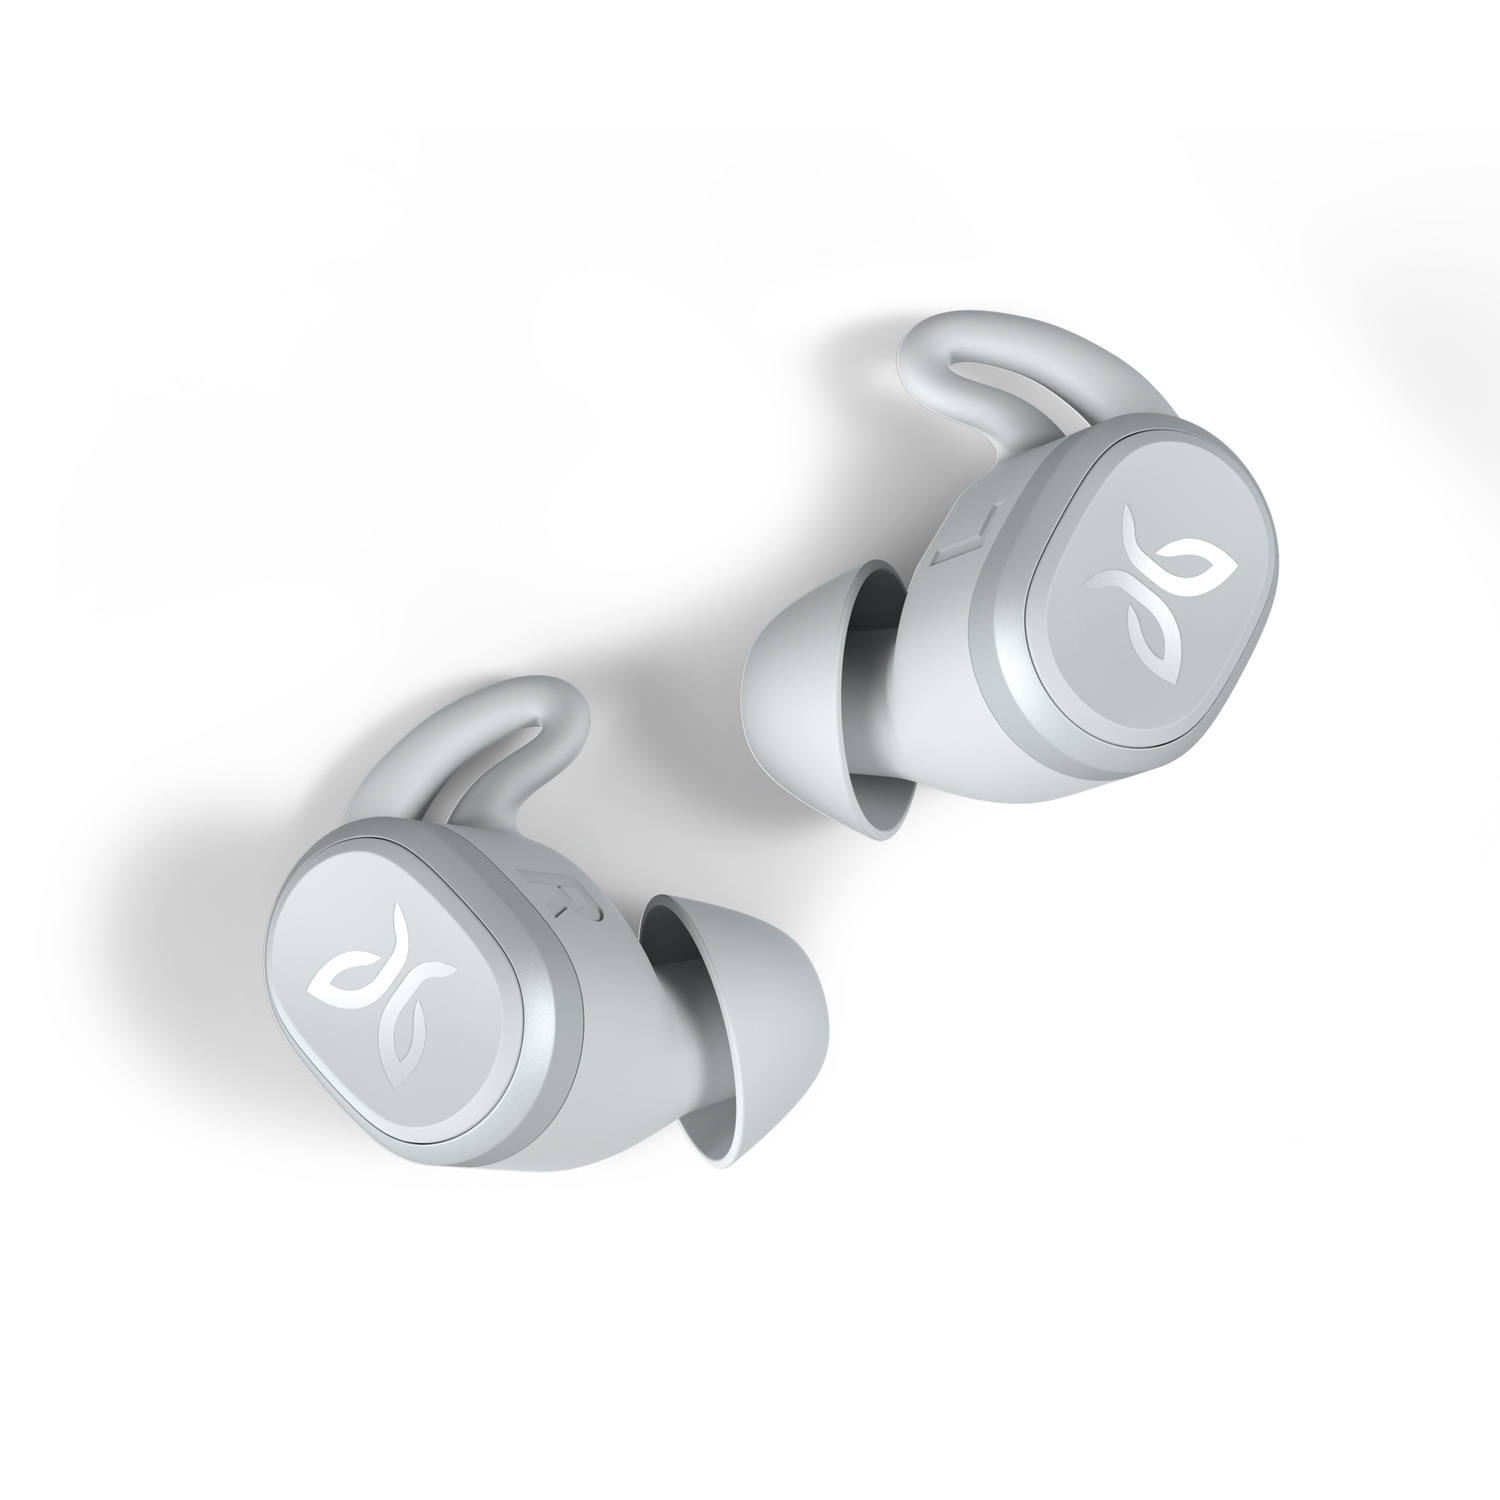 The Jaybird Vista are crushproof, waterproof exercise earbuds that are versatile enough to work in the backcountry or in the office.